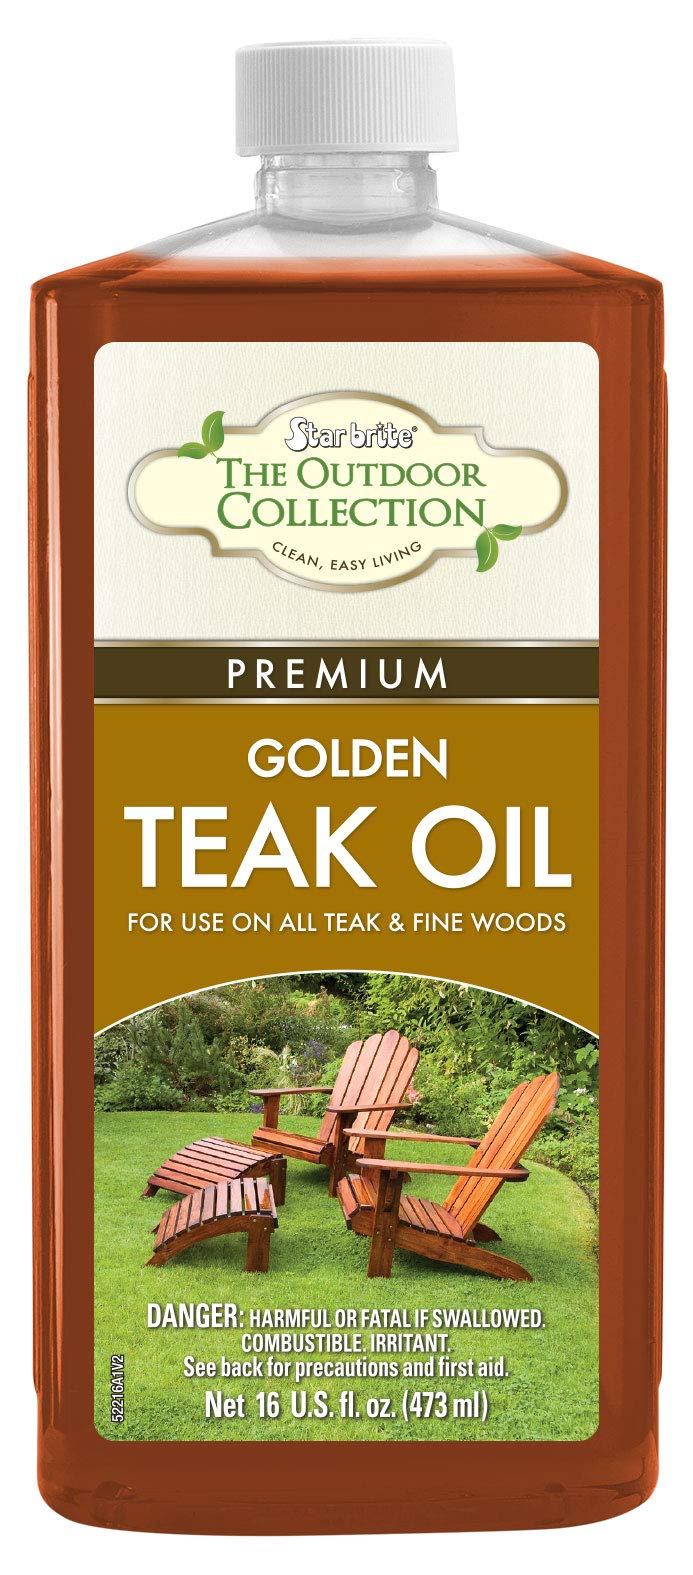 Star brite 52216 Premium Teak Oil, 16 oz. by Star Brite